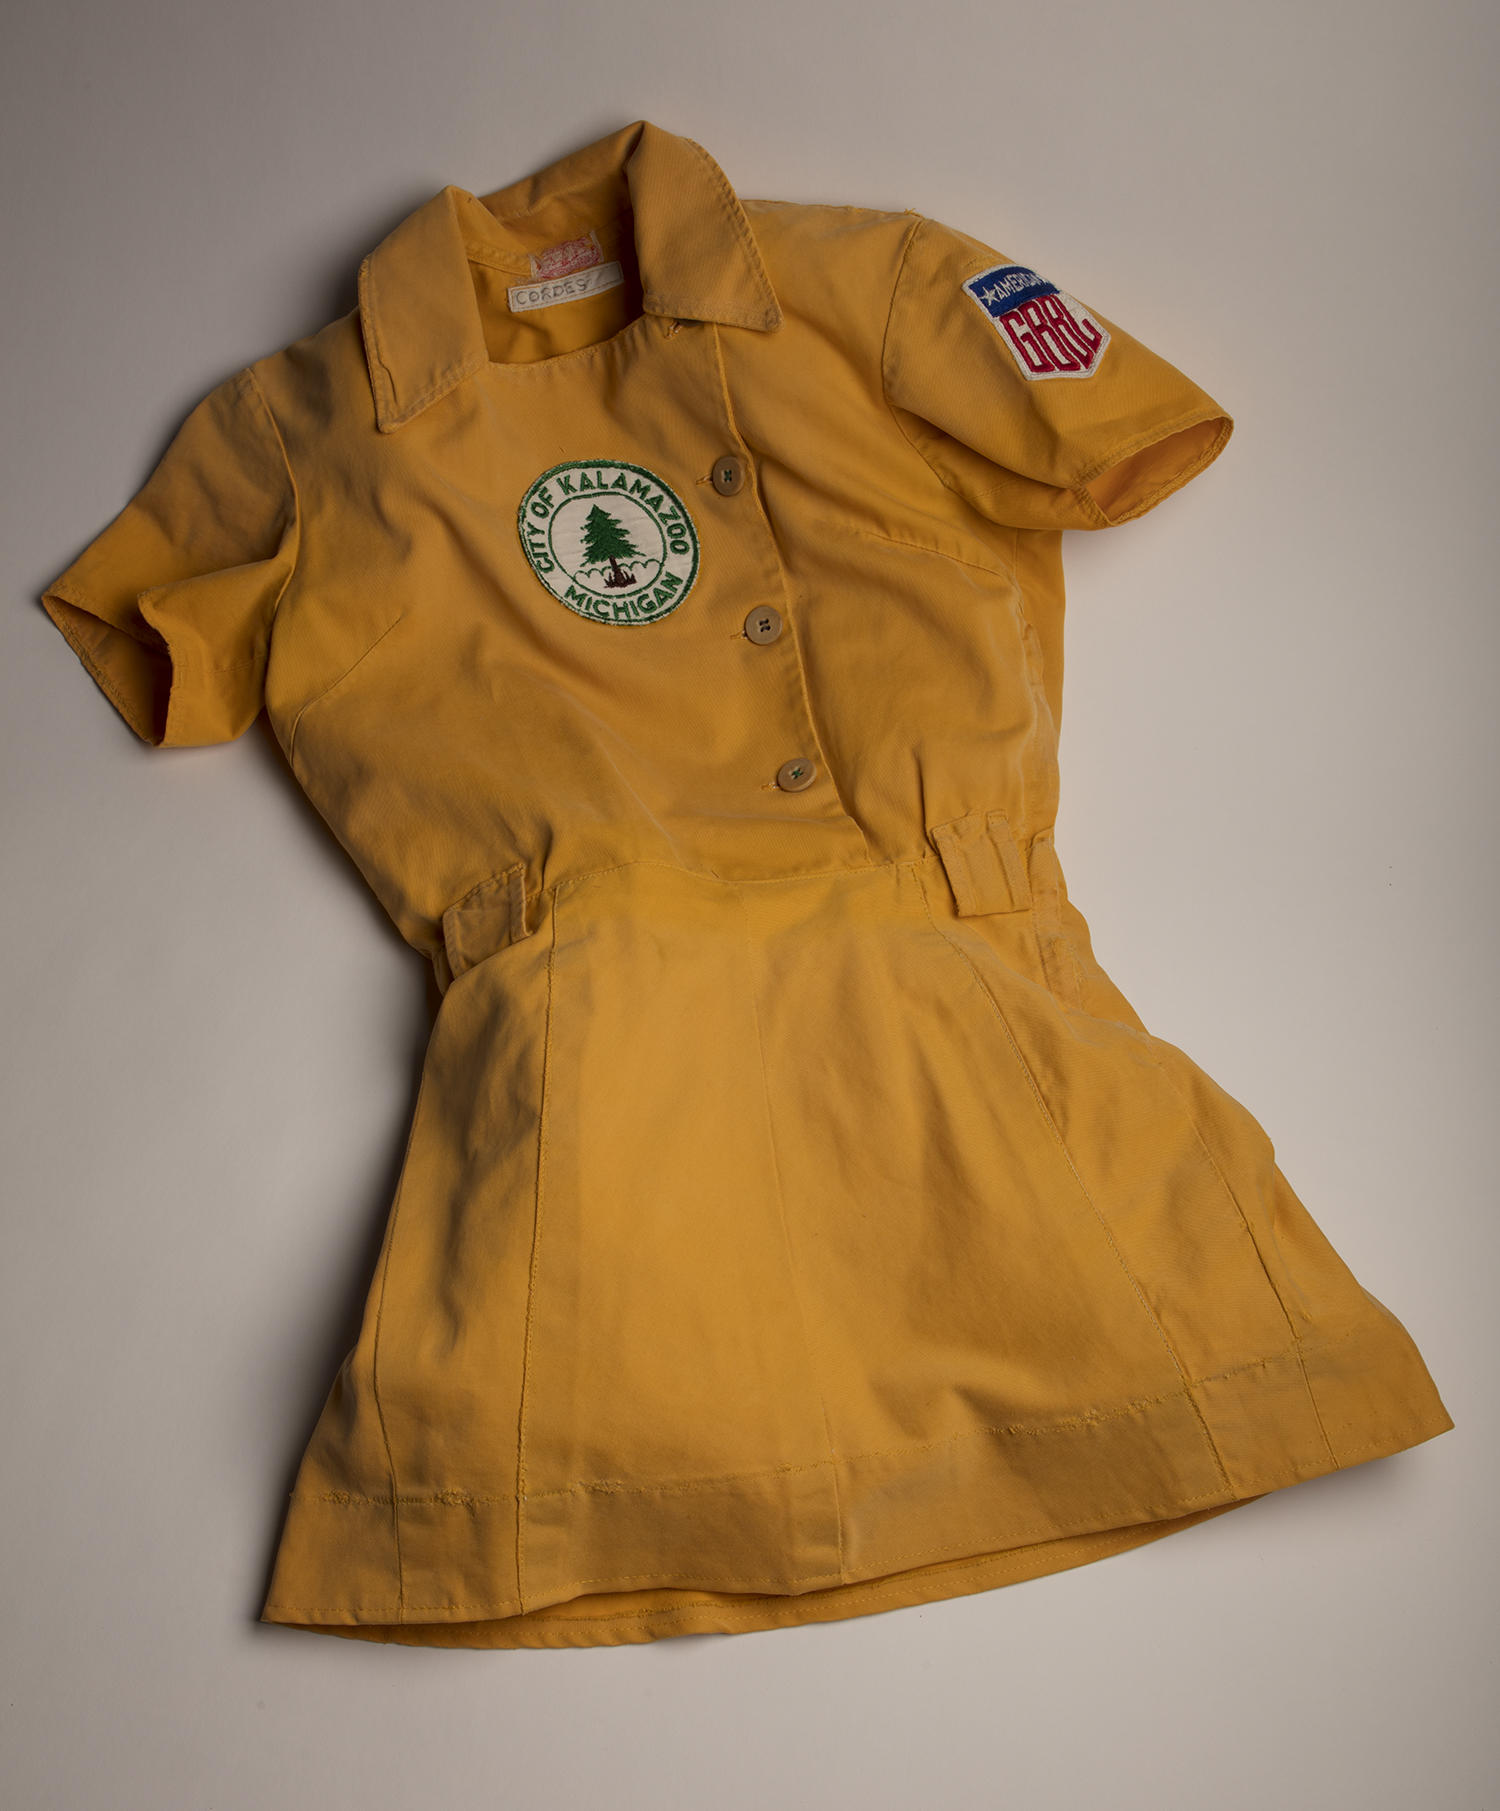 This Kalamazoo Lassie tunic was worn by Gloria Cordes from 1950-1954. (Milo Stewart Jr. / National Baseball Hall of Fame and Museum)